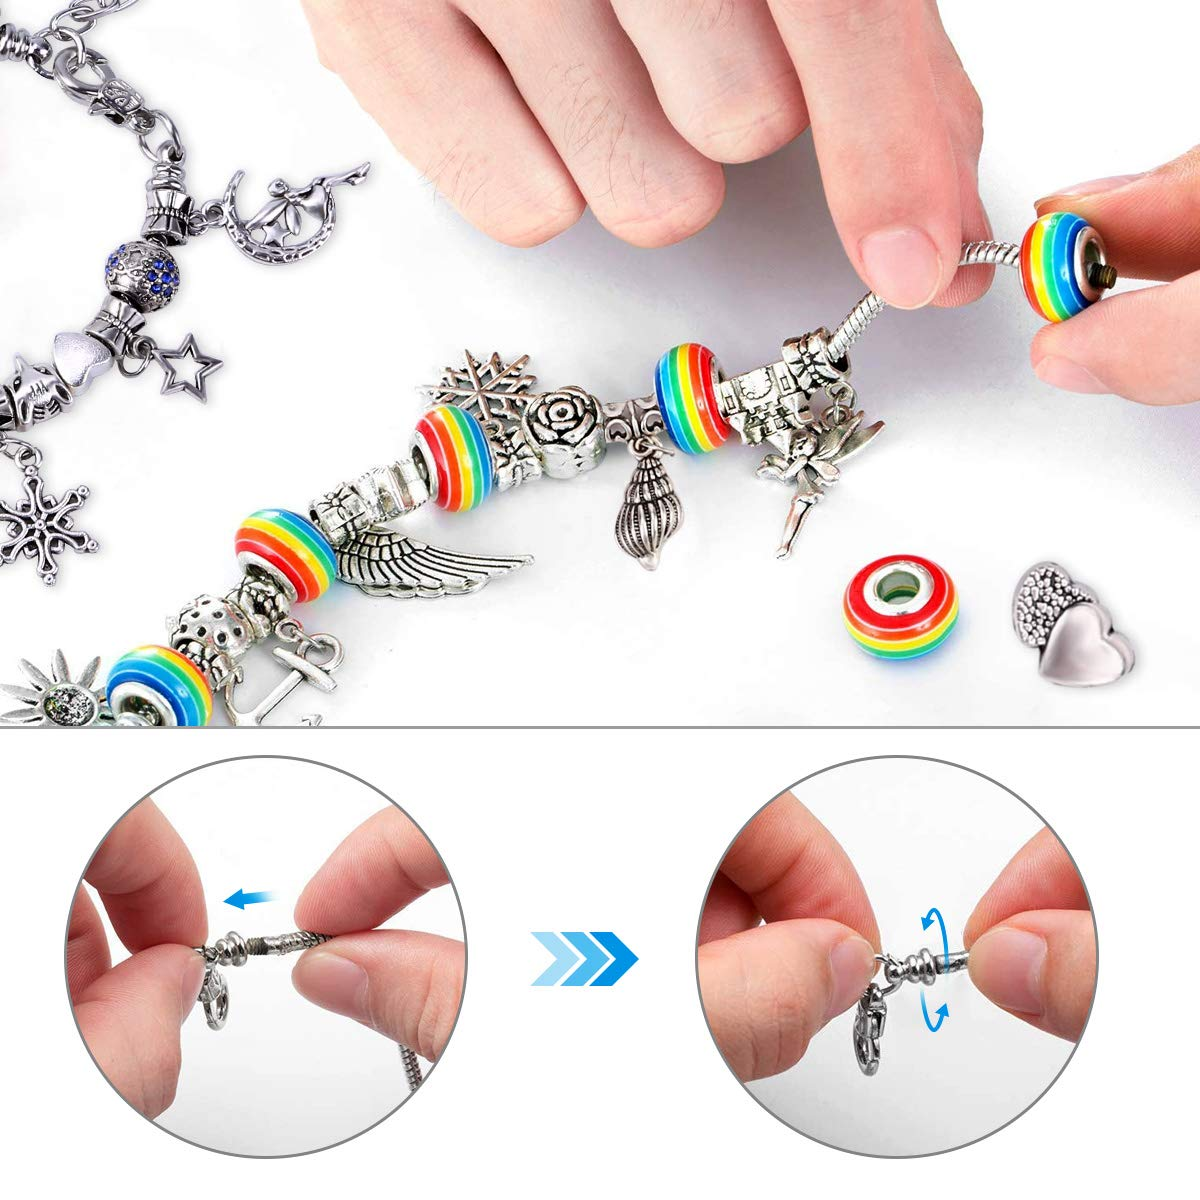 Beads Craft with Silver Plated Snake Chain Gift for Girl Teens Birthday Christmas Friendship DIY Charm Jewelry Making Set Bracelet Making Kit